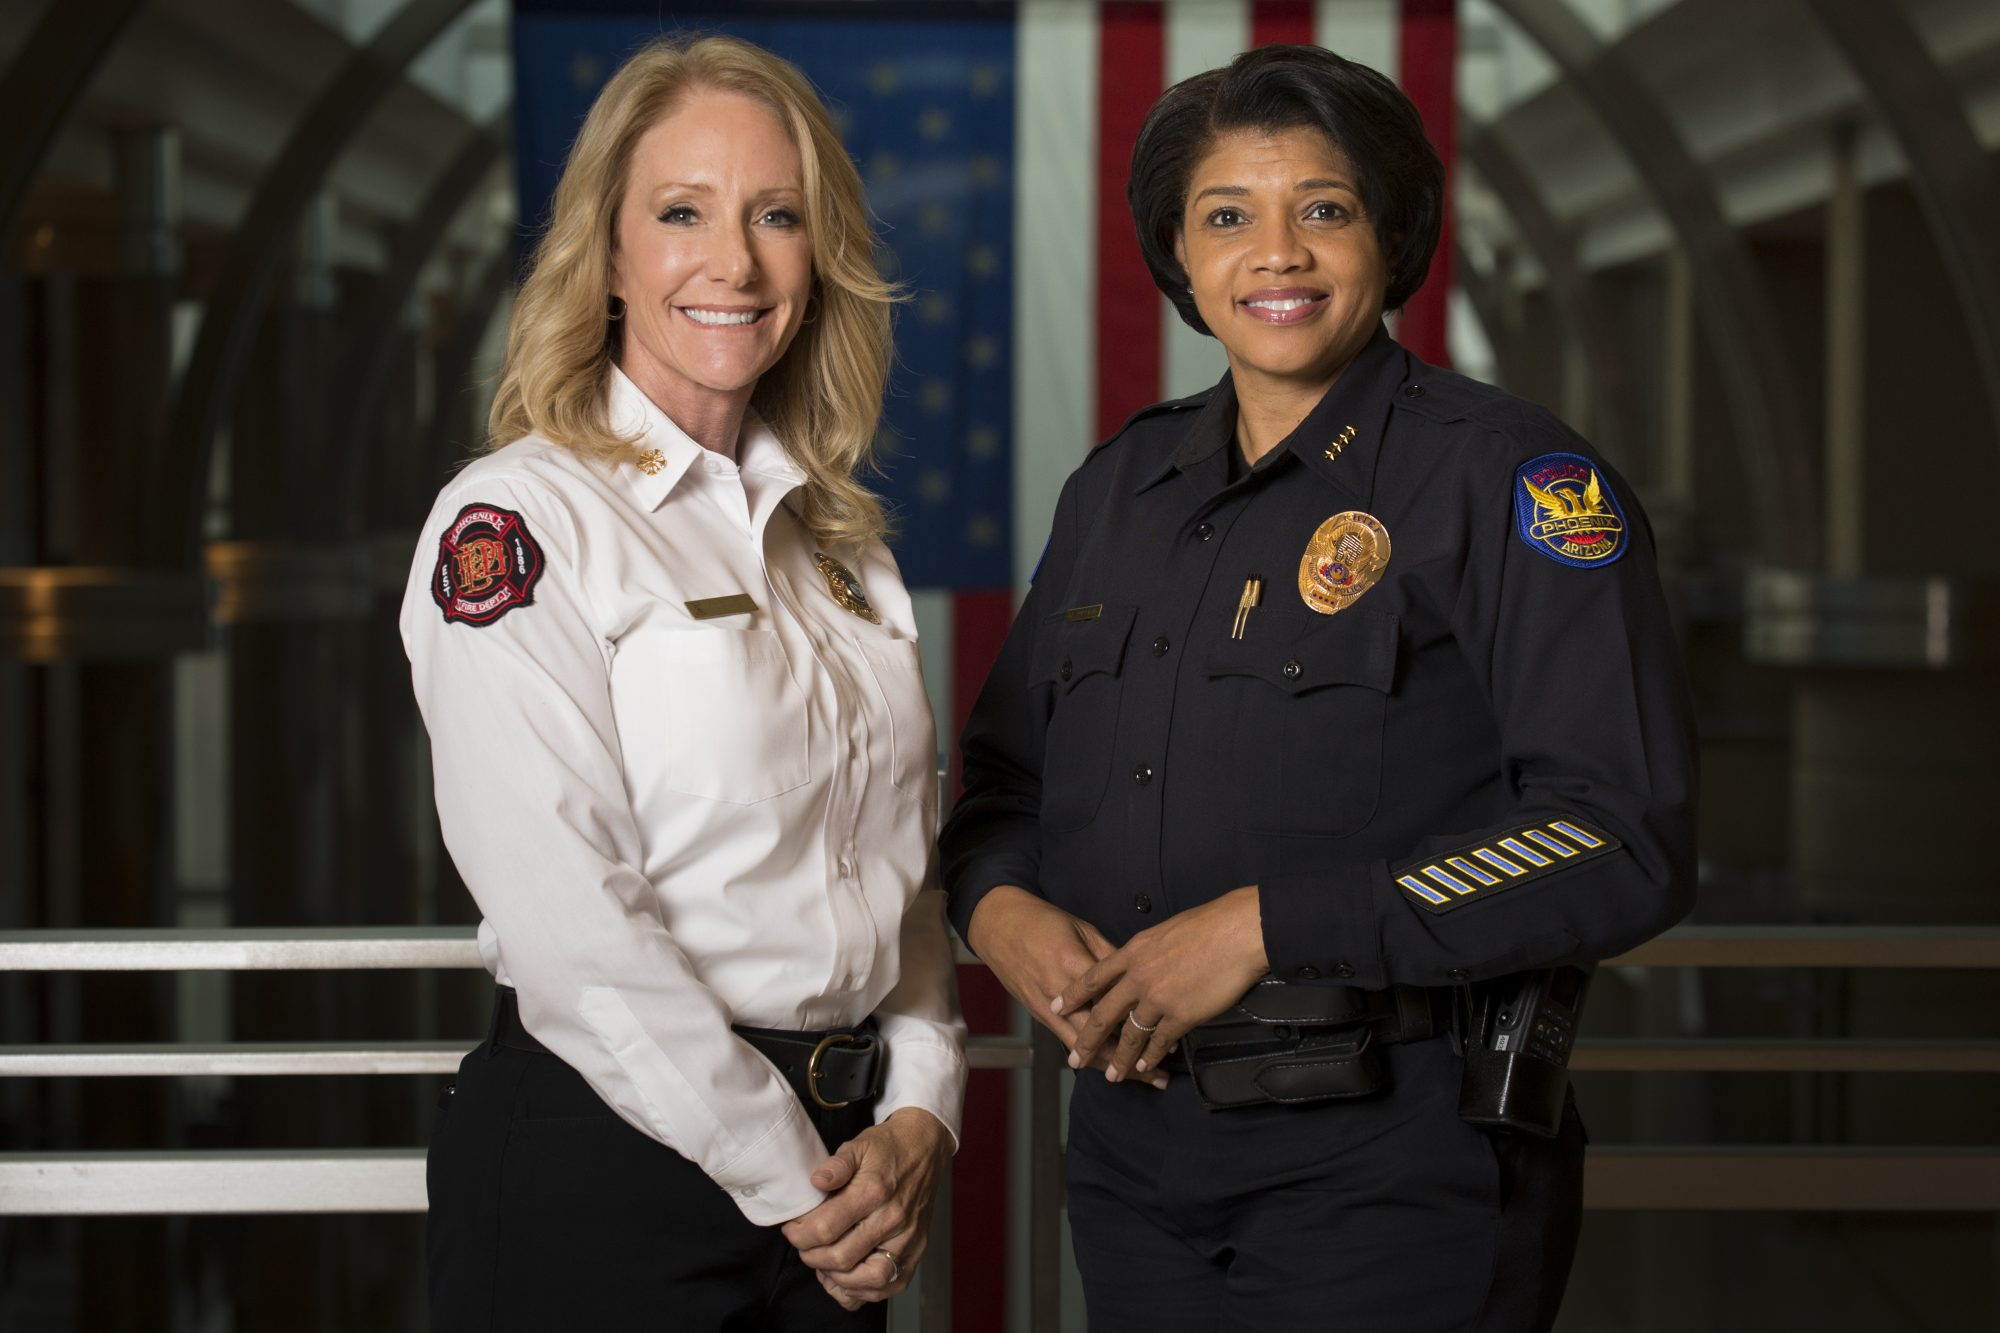 PHX Fire Chief Kara Kalkbrenner PHX Police Chief Jeri Williams 1216